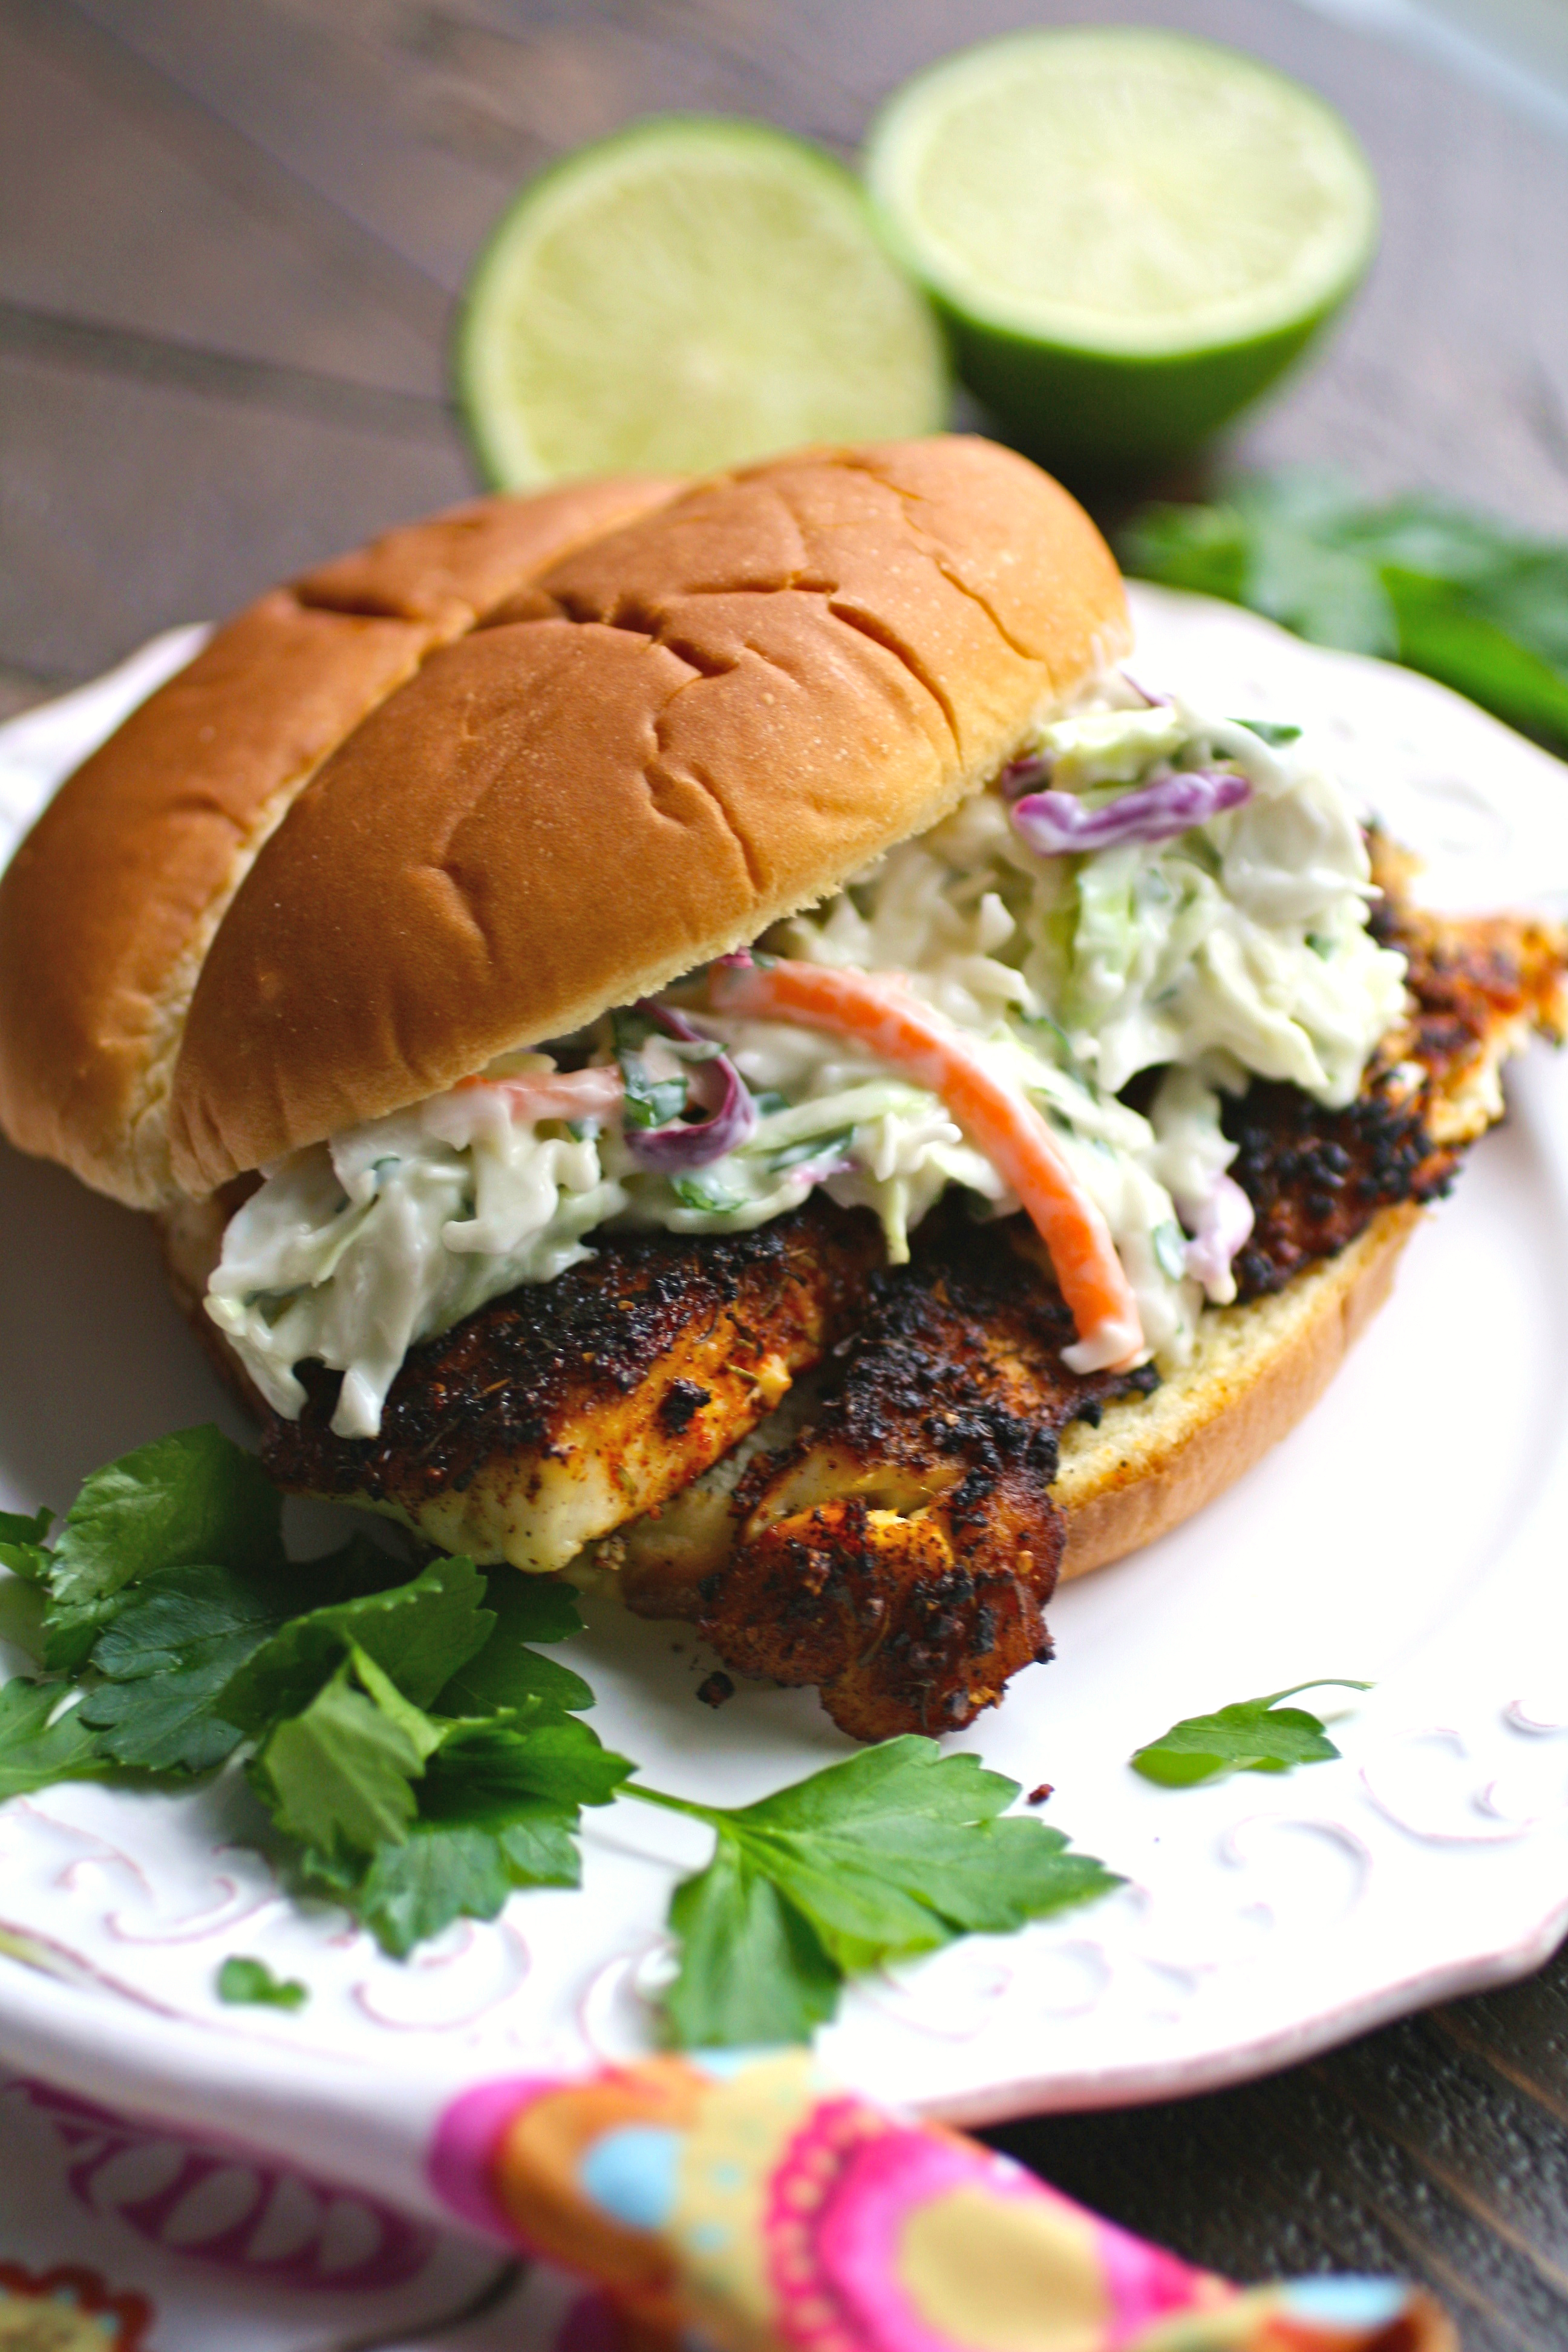 Wrap your hands around this sandwich! Blackened fish sandwiches with cilantro slaw is tasty!